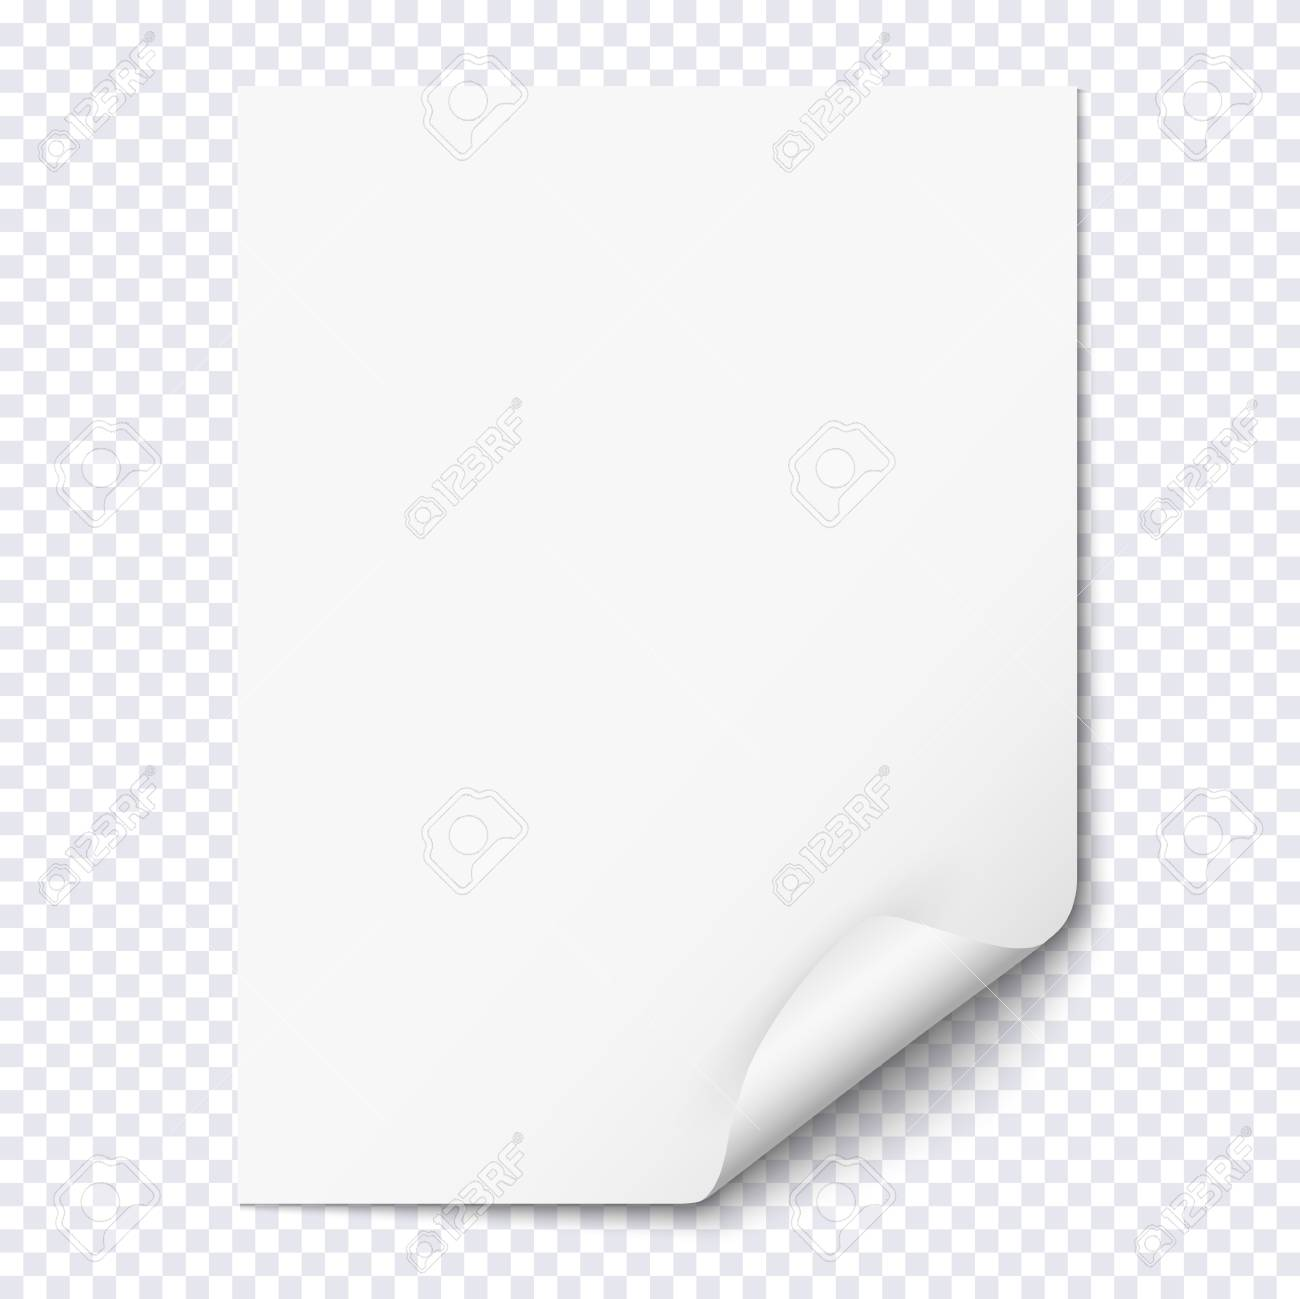 White Empty Paper Sheet With Curled Corner Realistic Blank Folded